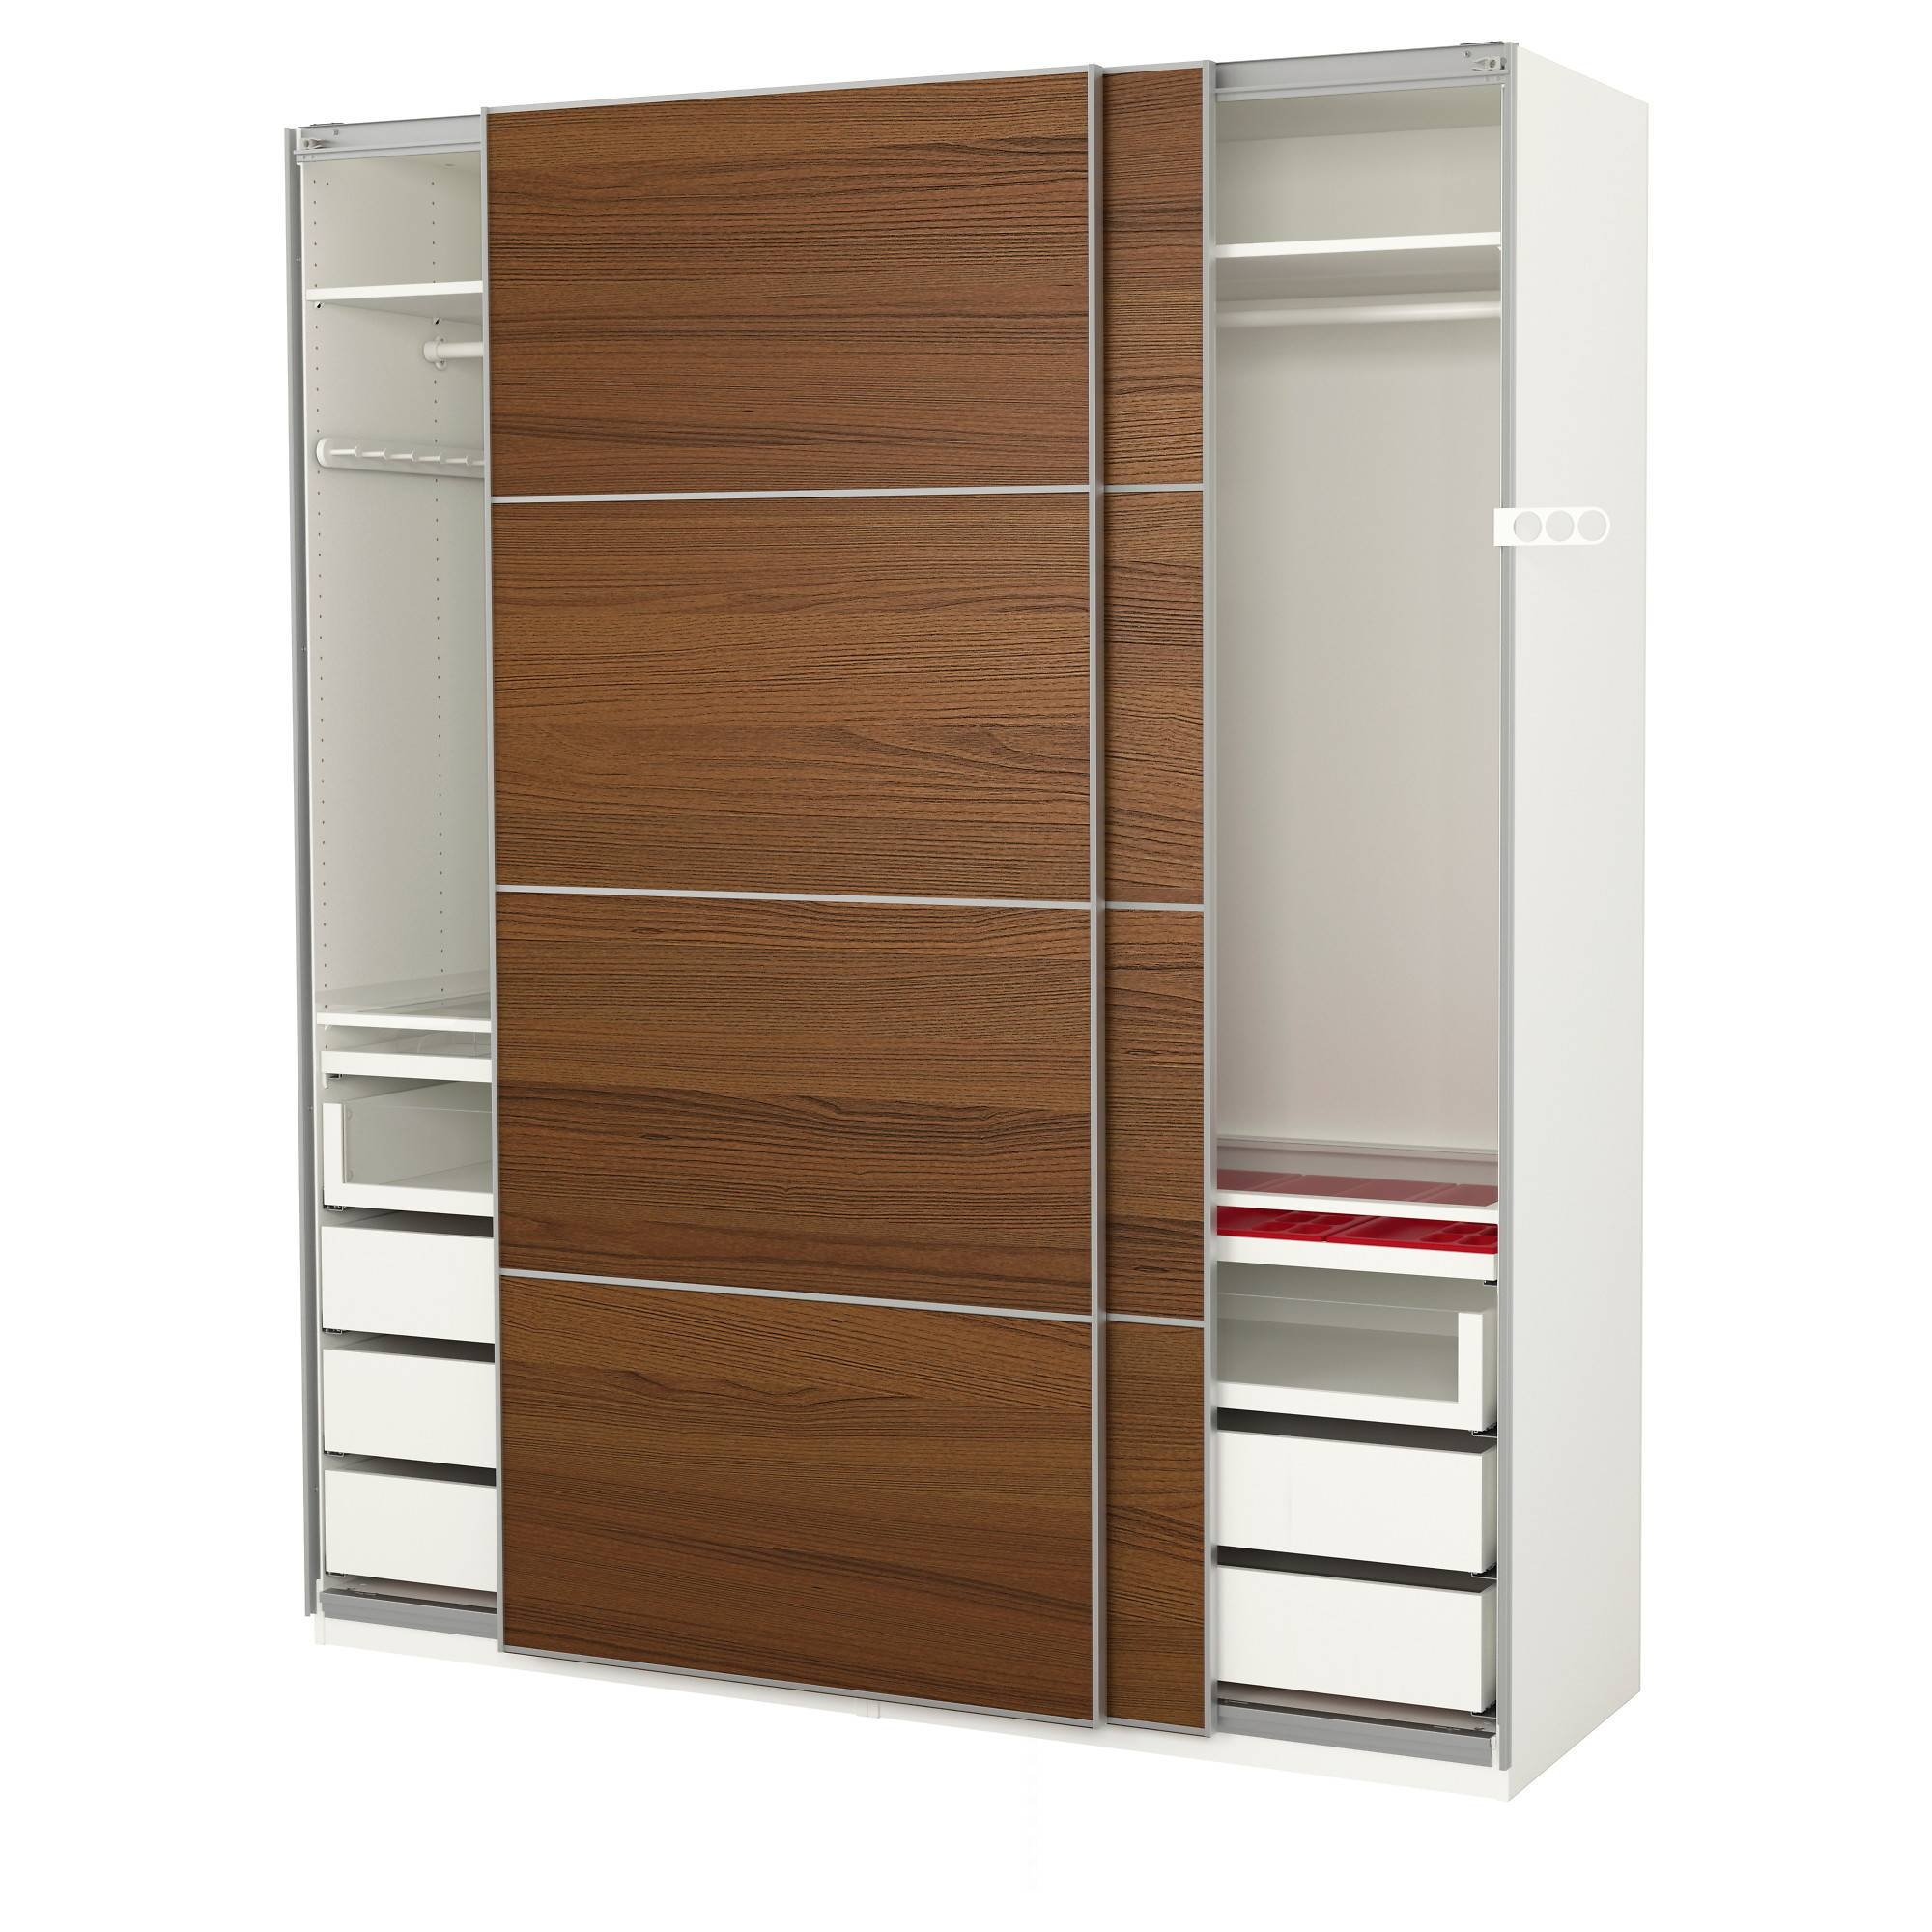 Wardrobes - Pax System - Ikea in Wardrobe With Shelves And Drawers (Image 24 of 30)